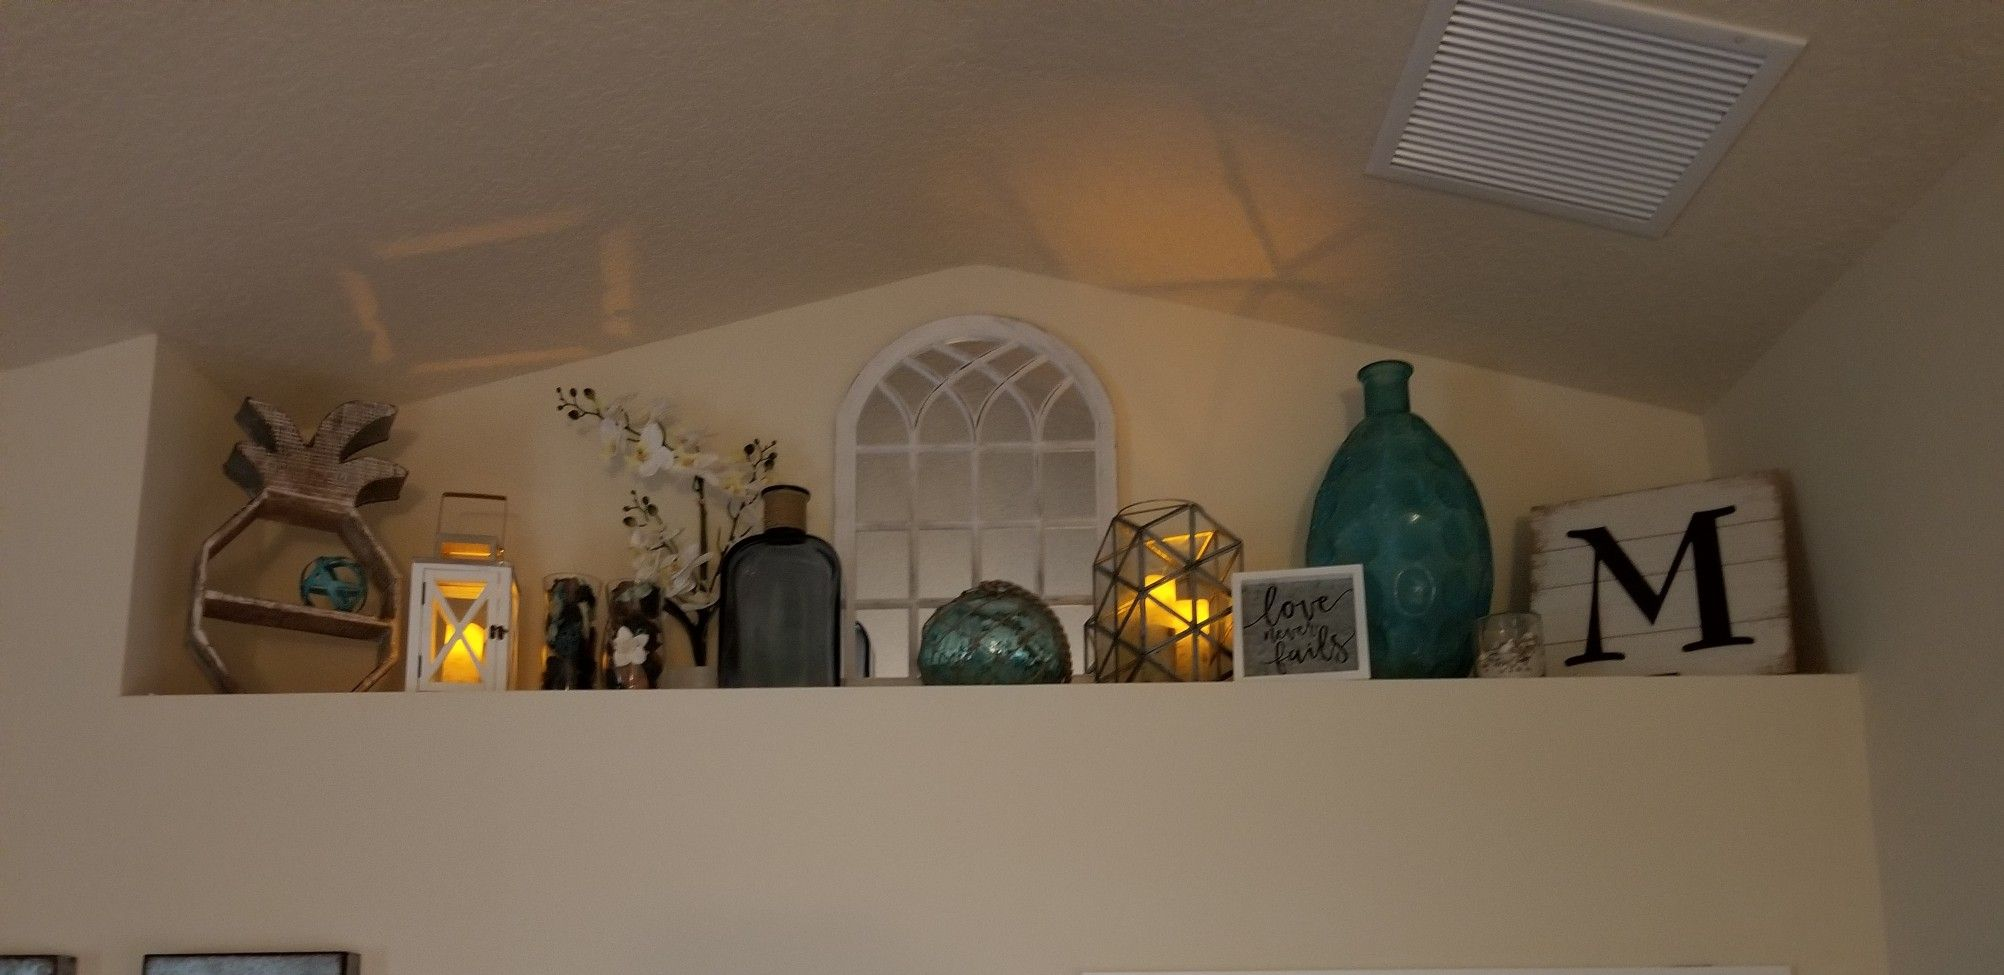 The Bishop S Our Home A Little Preview Shelf Decor Living Room Vaulted Ceiling Living Room Ceiling Shelves